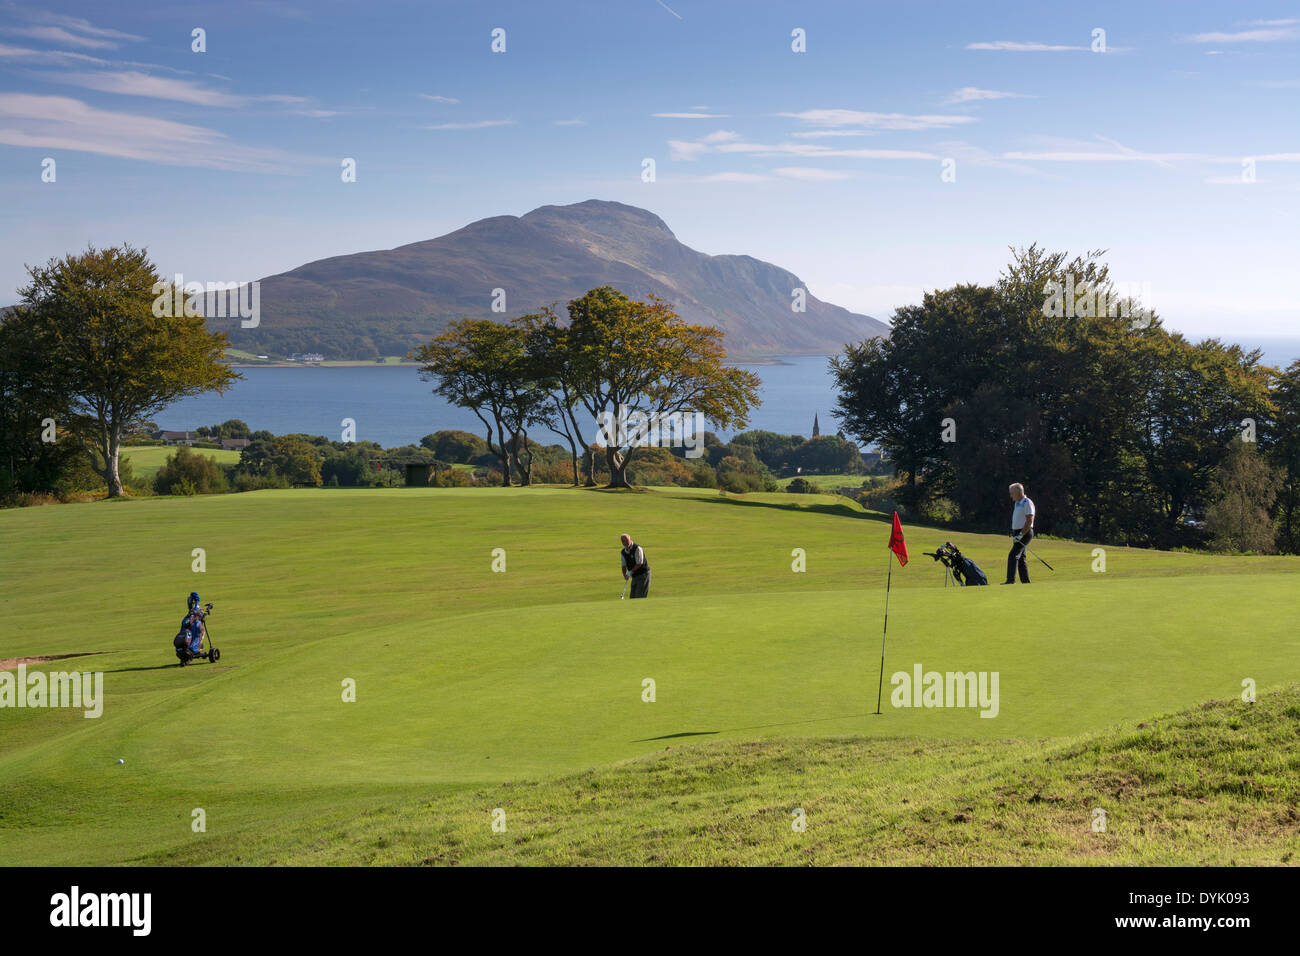 golfers on lamlash golf course isle of arran - Stock Image